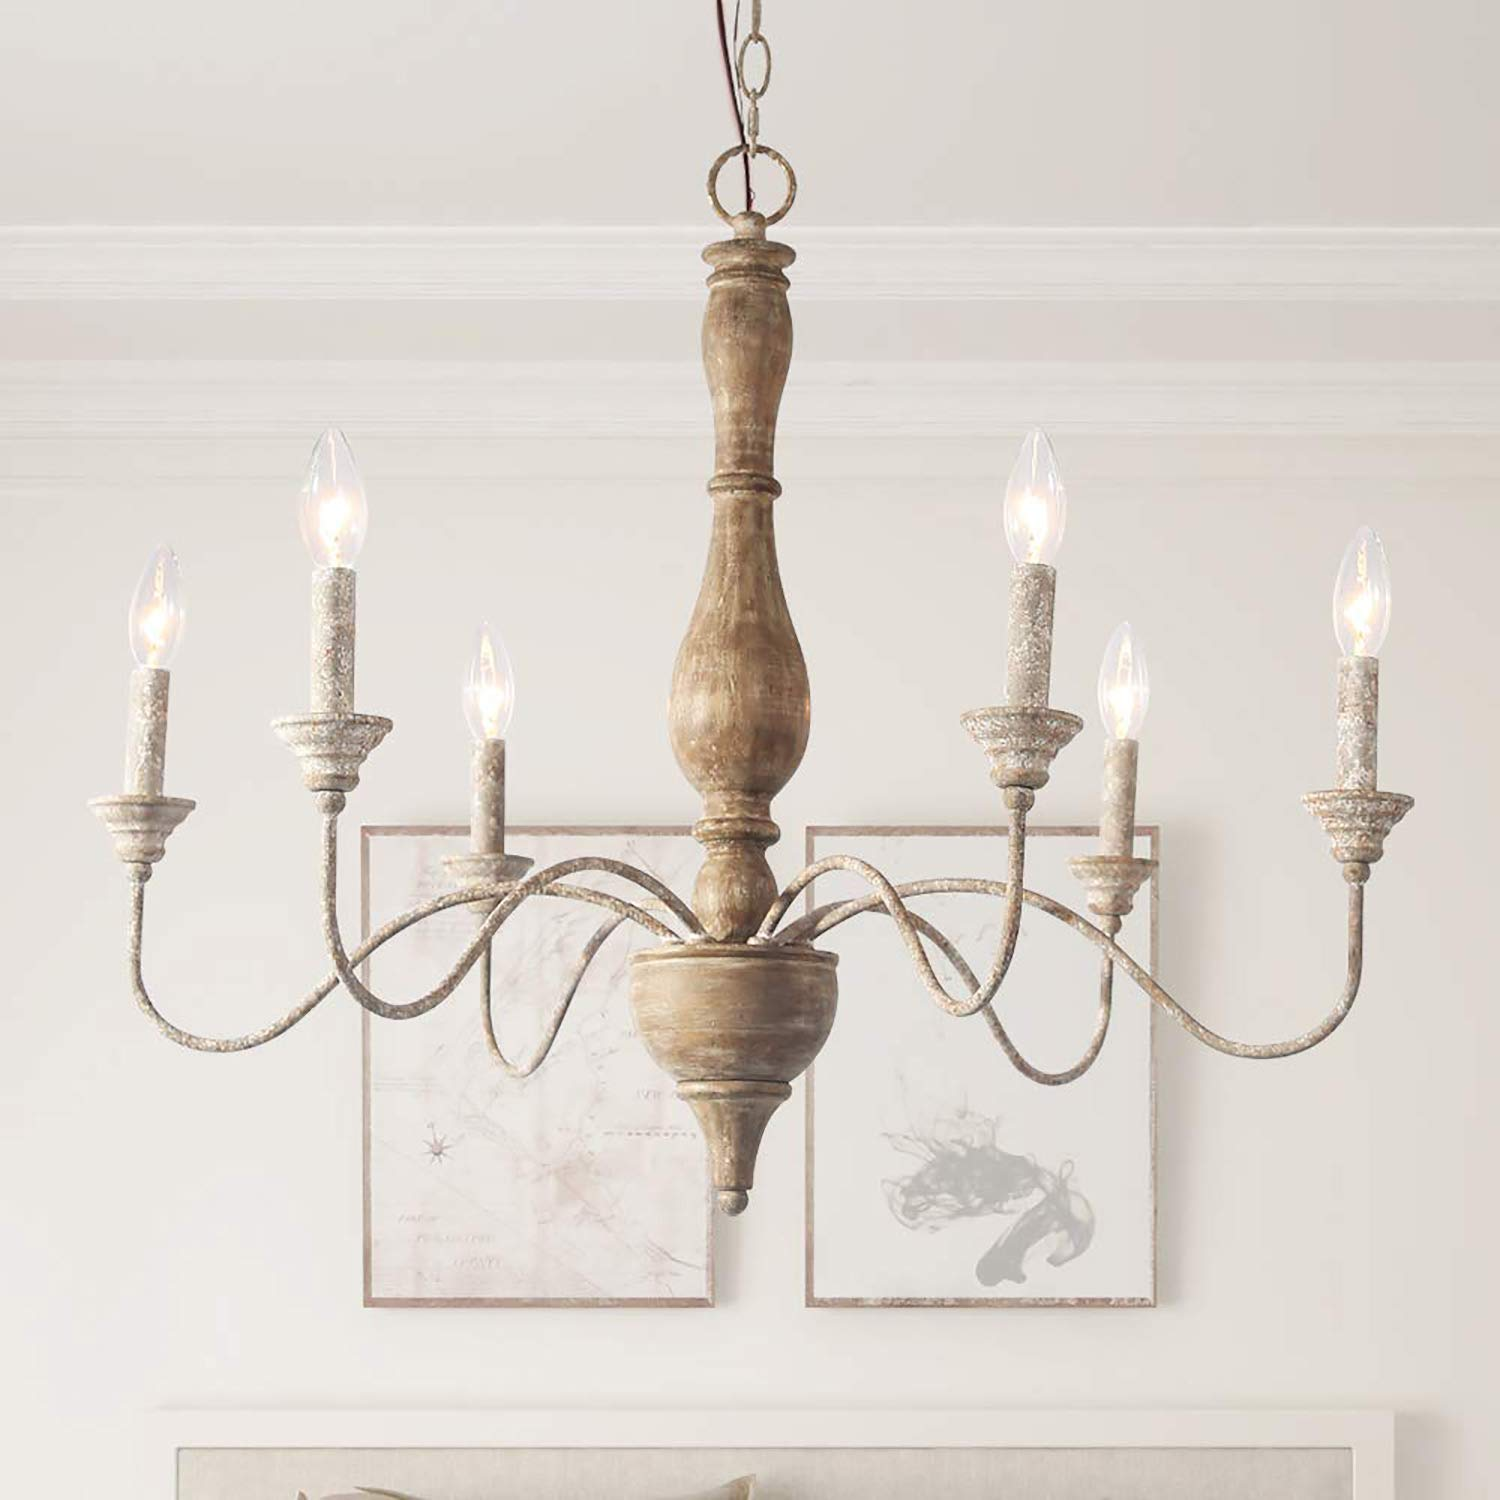 Handmade Distressed French Country Chandelier.